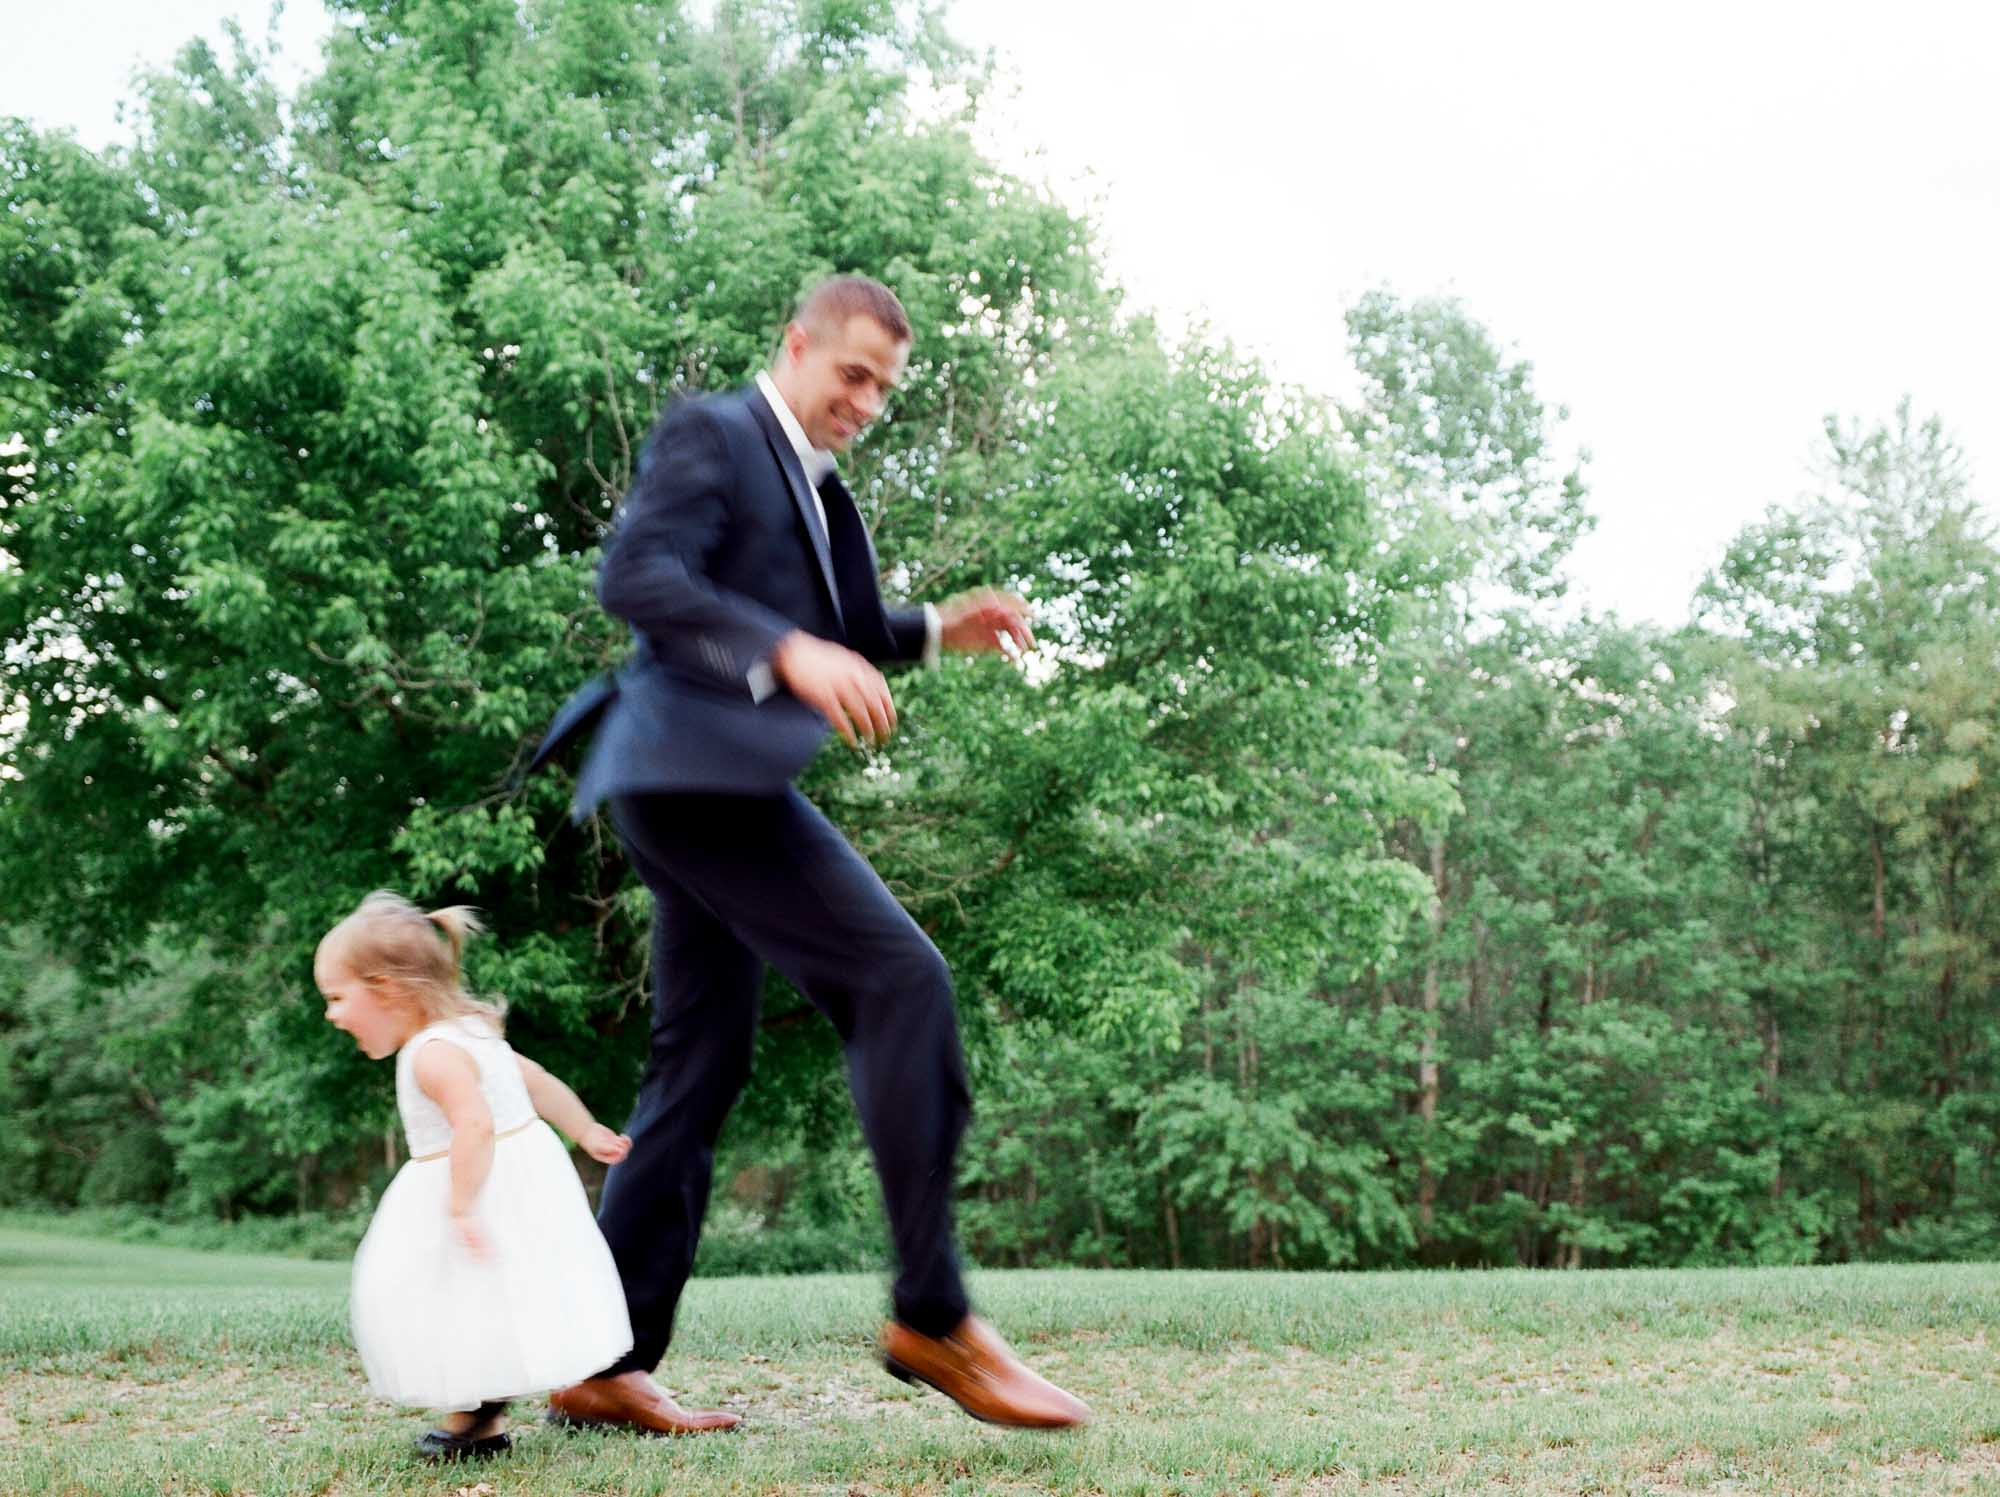 charlotte_lynchburg_film_family_wedding_photographer-29.jpg